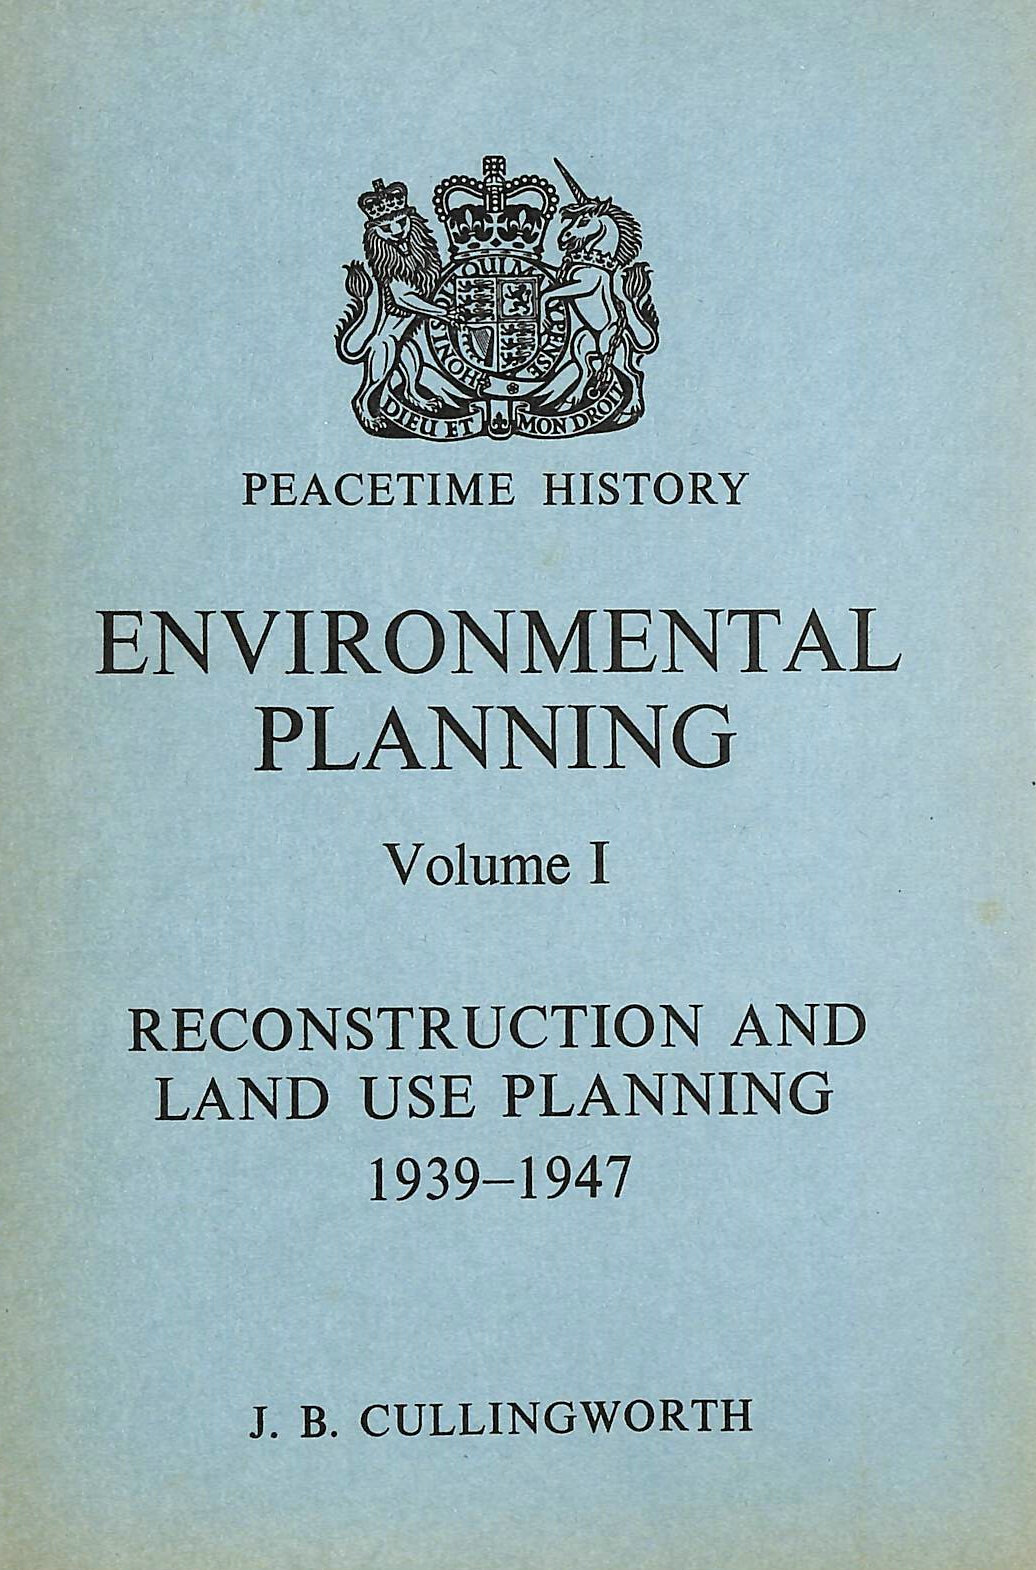 Image for Environmental Planning, 1939-69: Reconstruction and Land Use Planning, 1939-47 v. 1 ([Peacetime history])